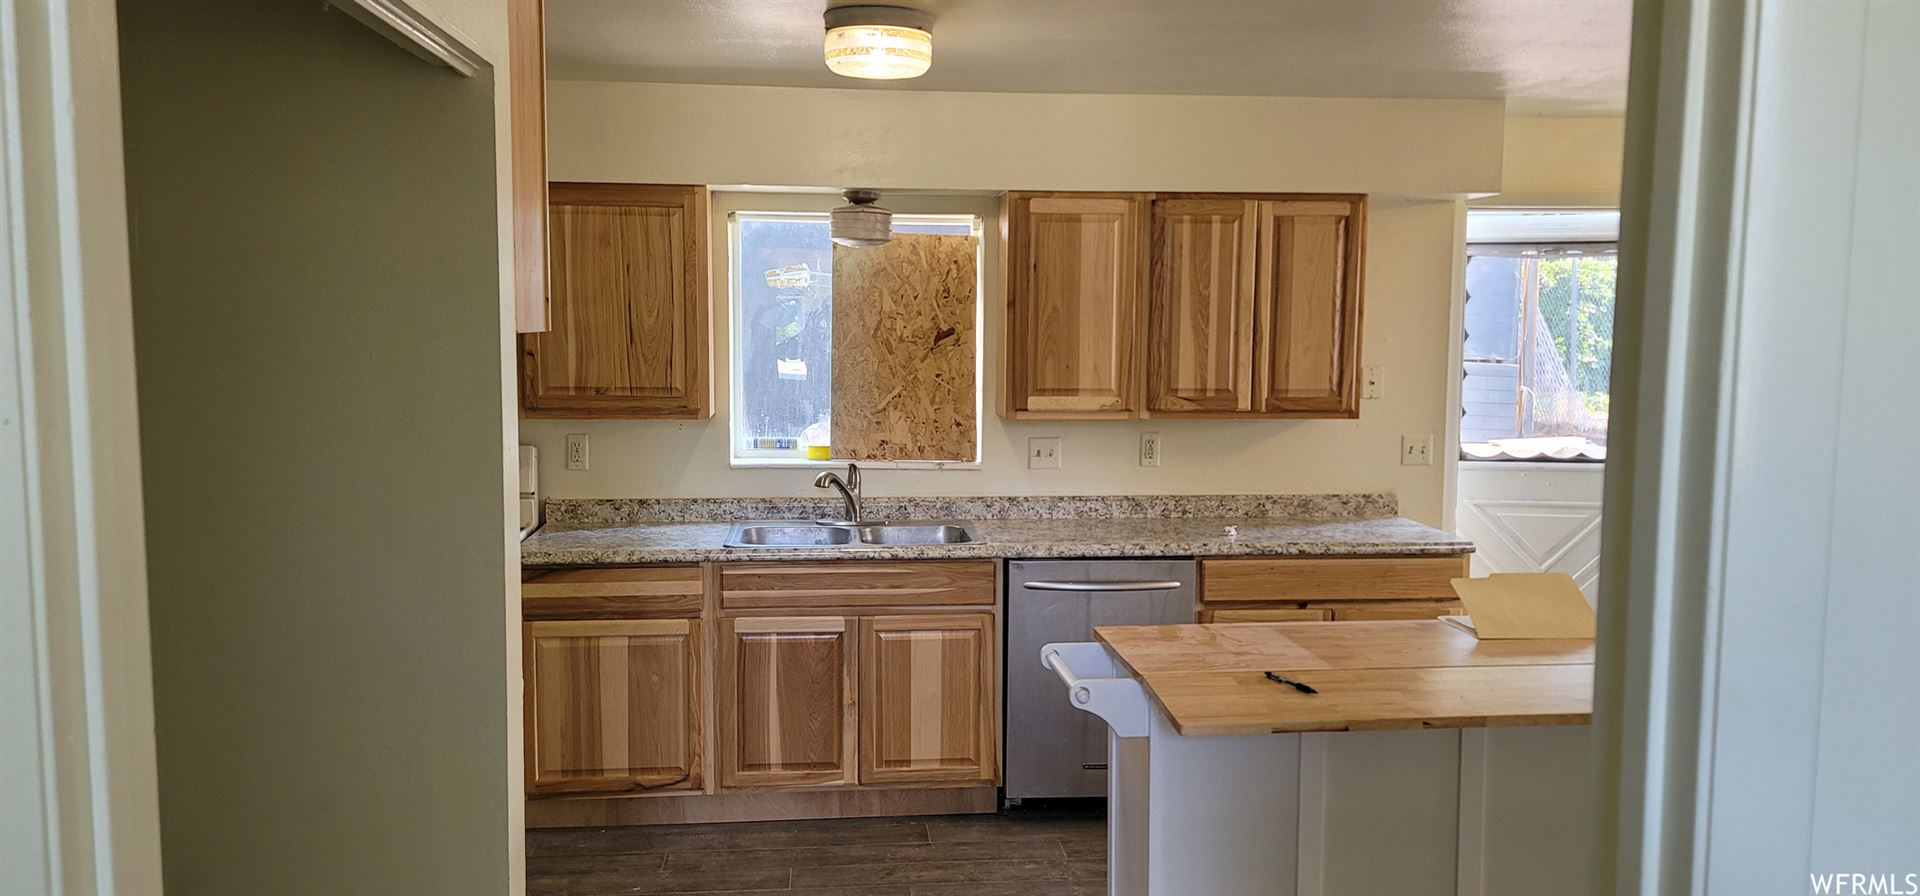 Photo of 1837 W HYANNIS S AVE, West Valley City, UT 84119 (MLS # 1754979)